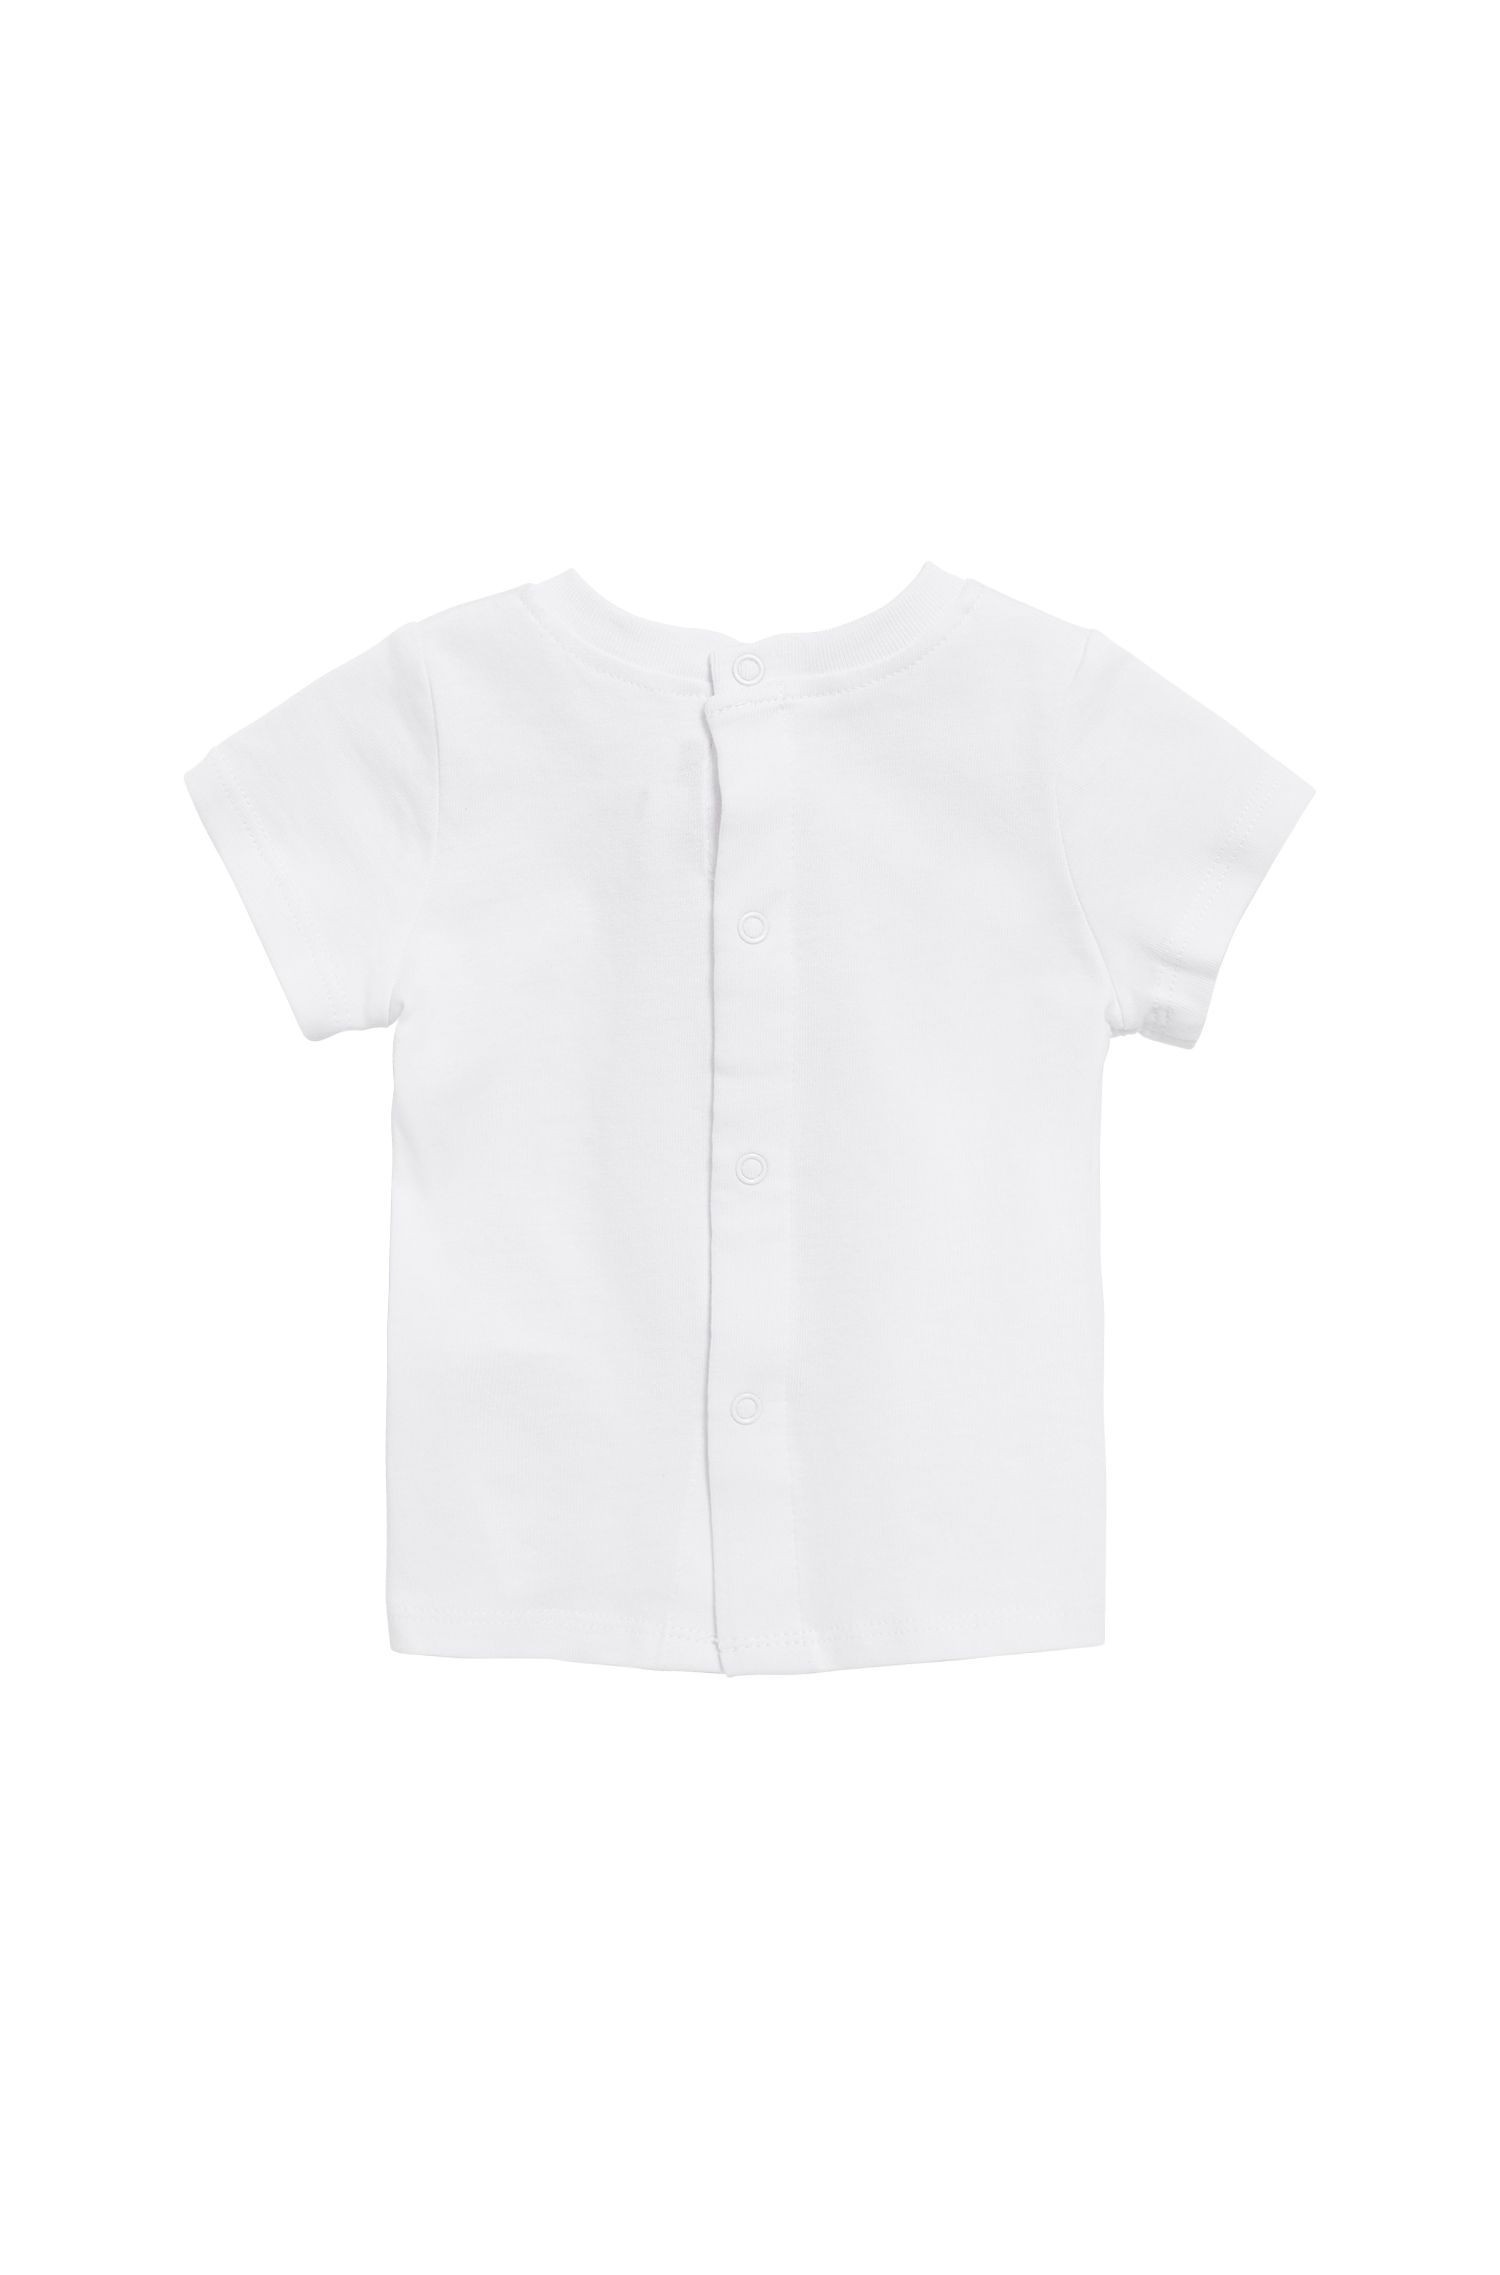 Baby logo T-shirt in pure cotton jersey, White